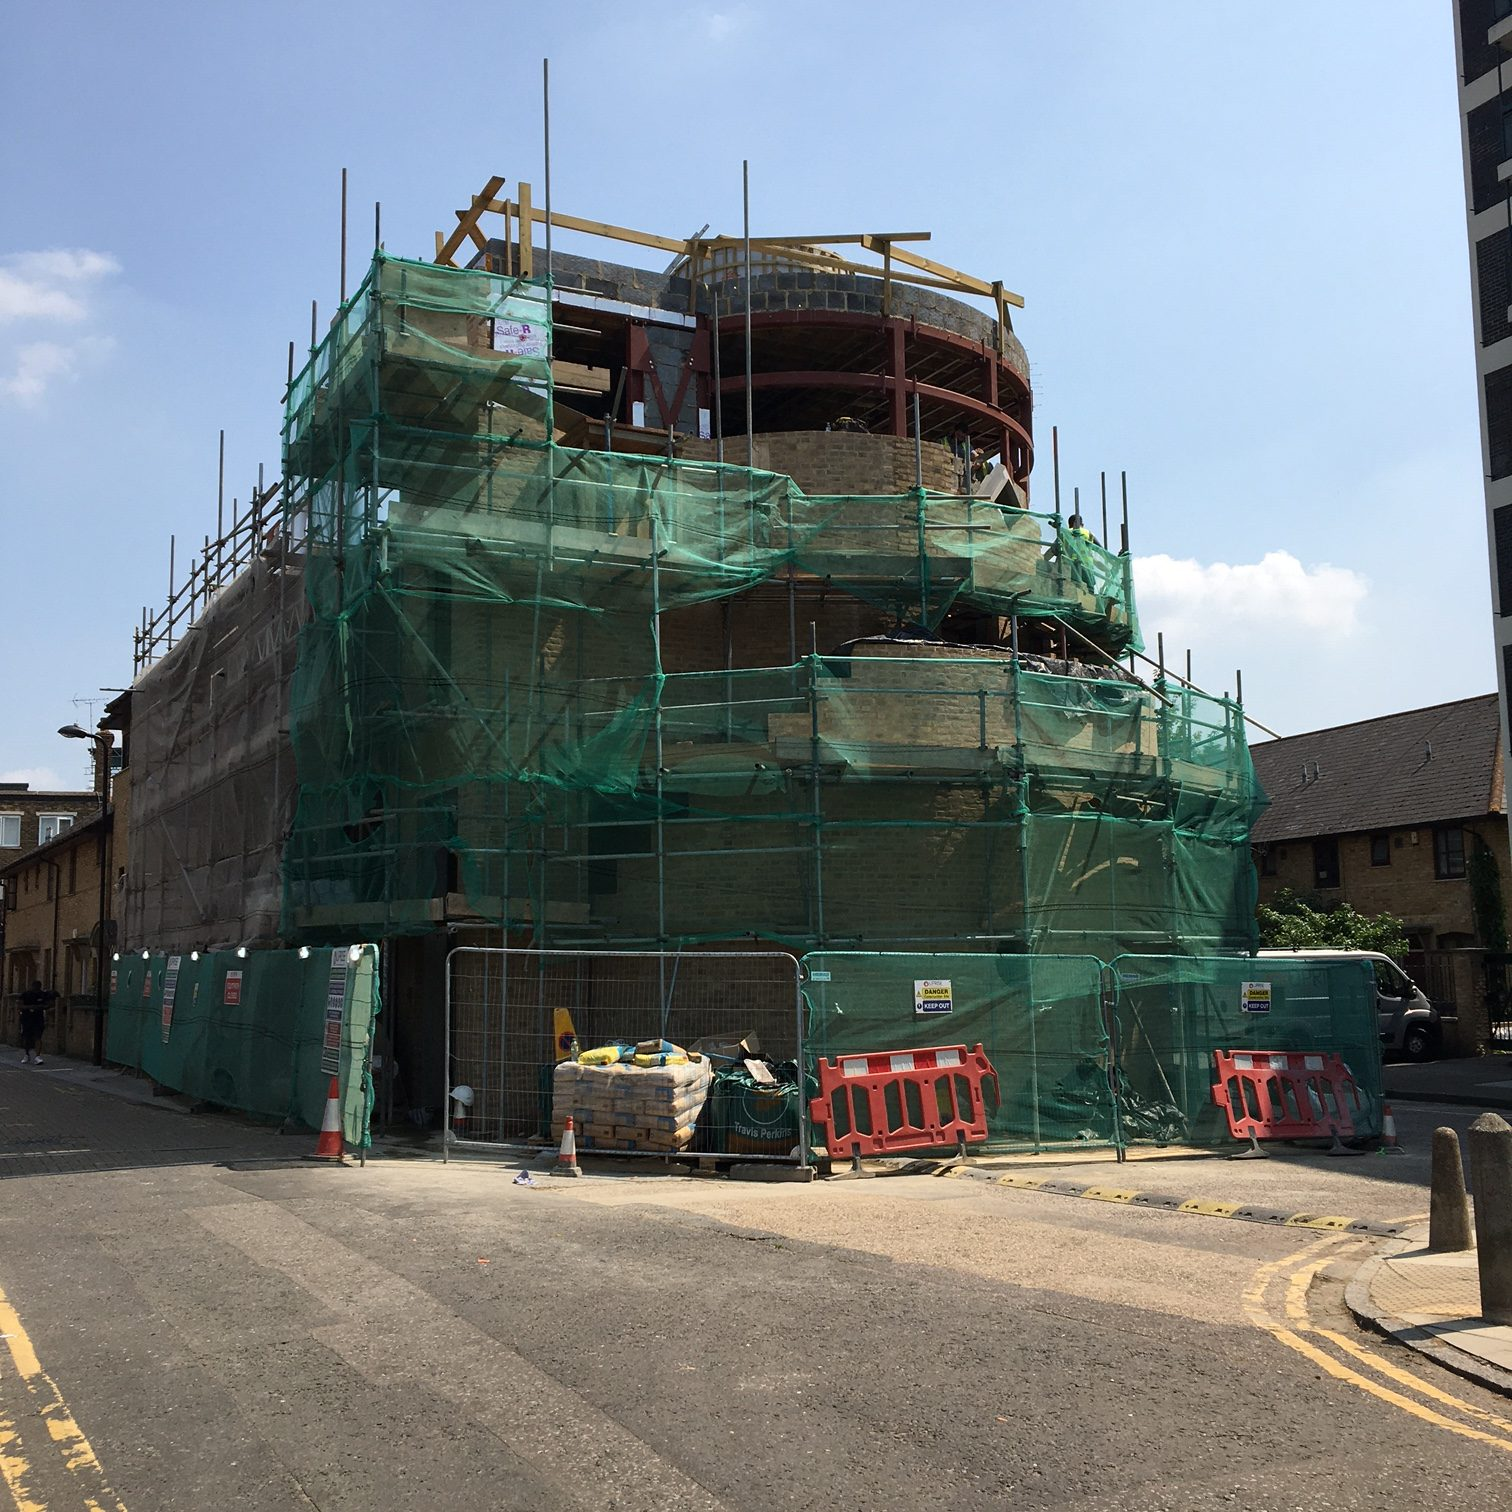 View of the building from the west along Ivy Street. The lowere floors are covered in bricks and the steel structure is still seen on the upper floors. Scaffolding  adn green mesh surround the  building. The old pub front is still visible behind the front scaffolding.